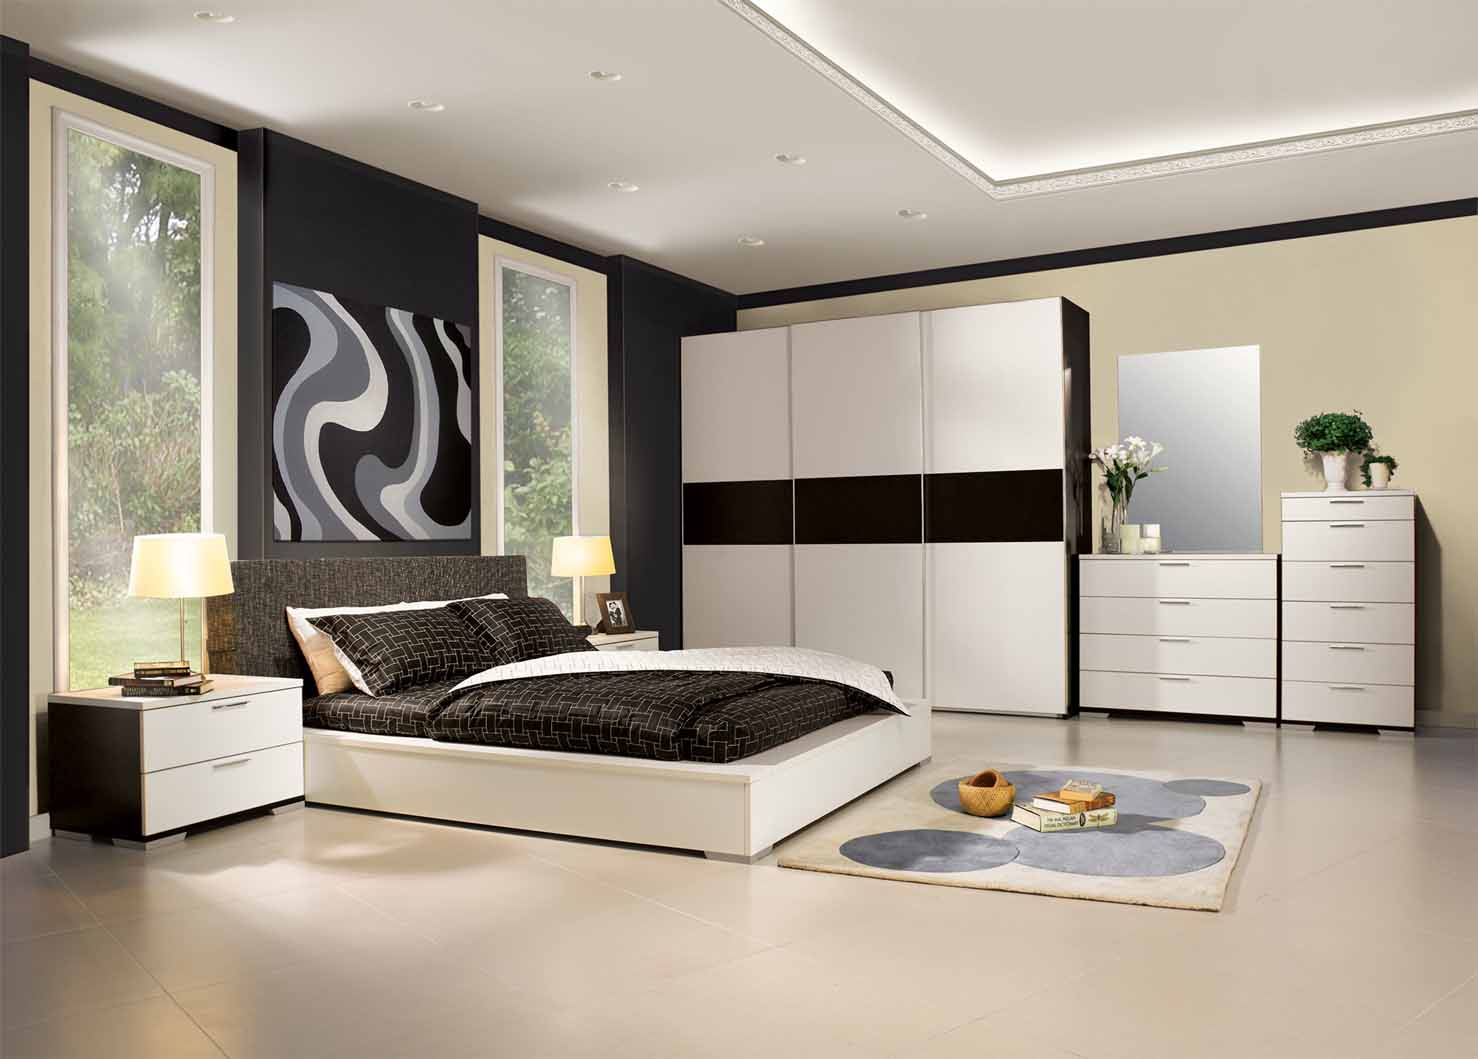 Modern black bedroom furniture popular interior house ideas for Furniture ideas bedroom